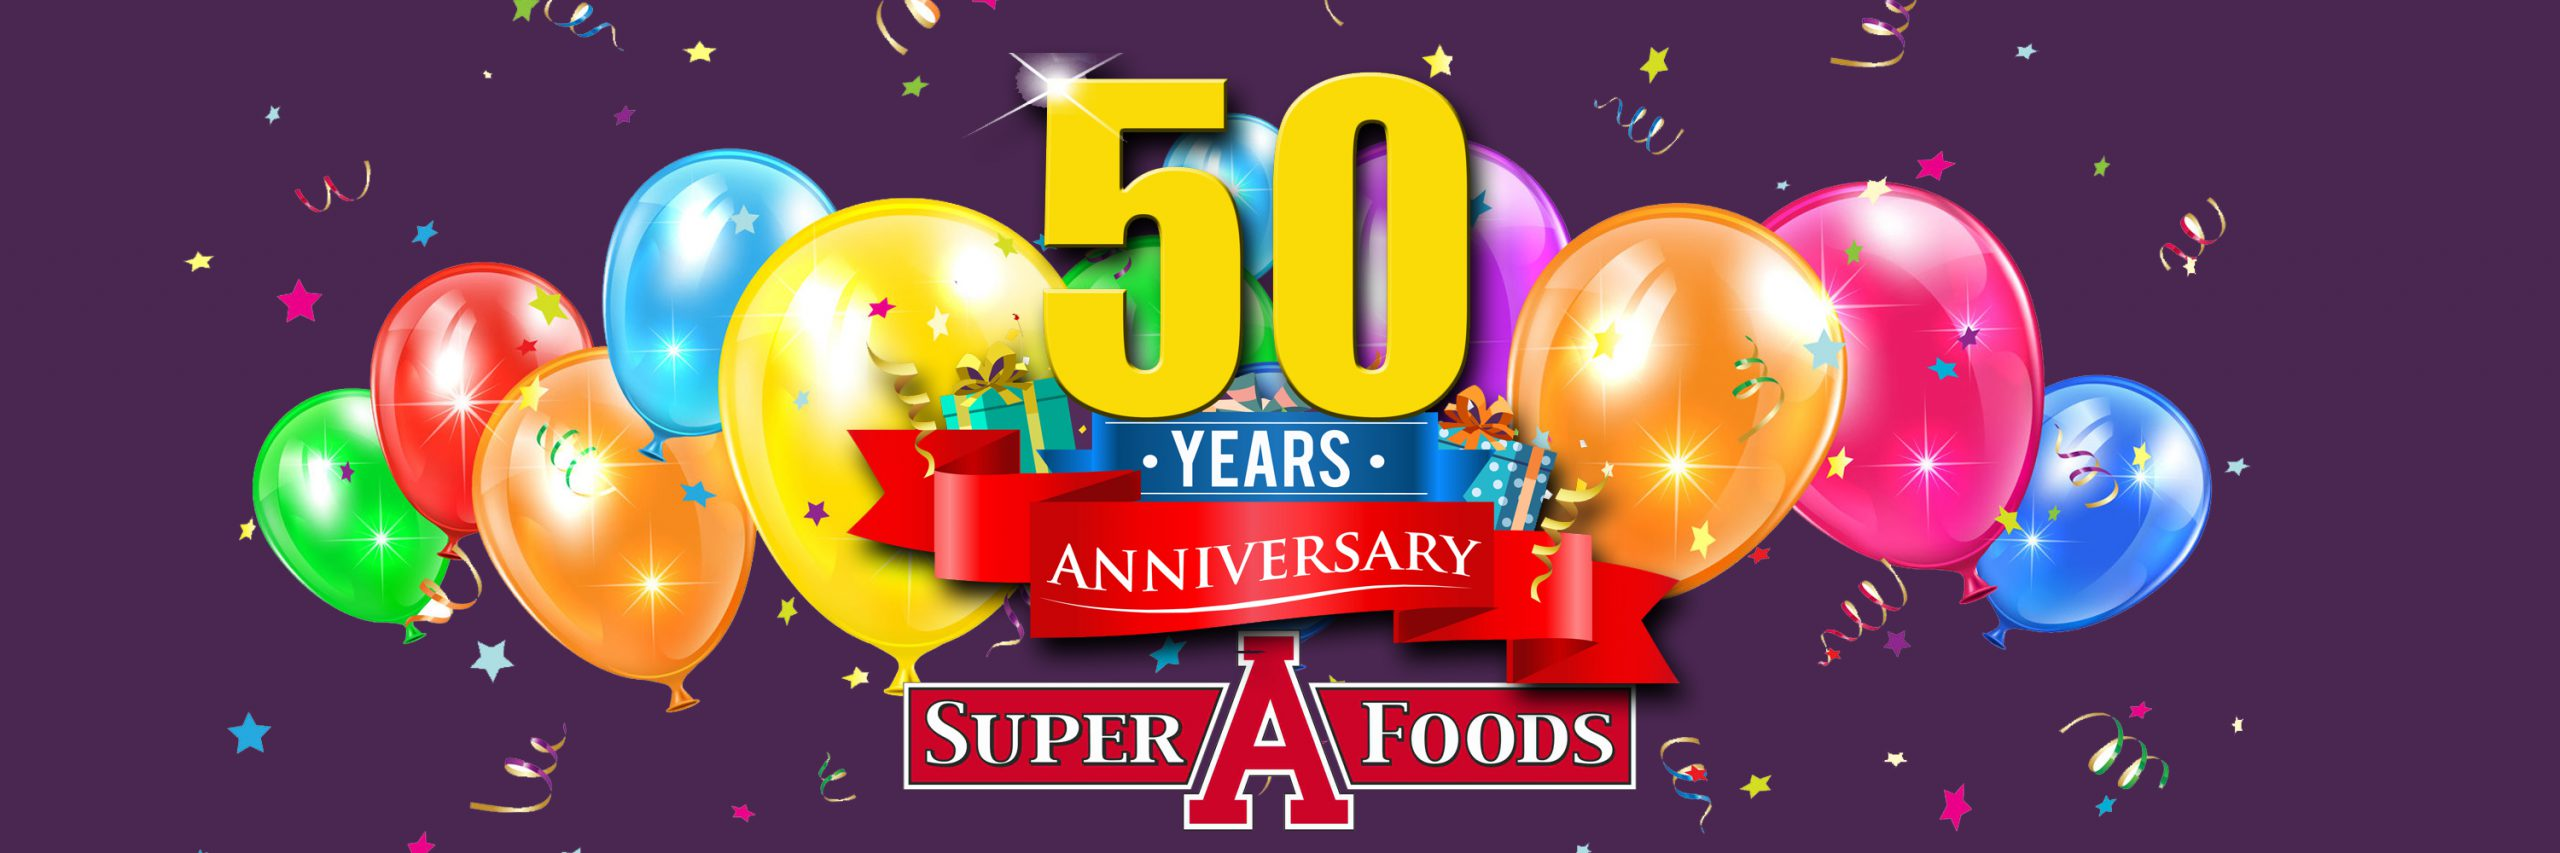 Super A Foods Anniversary 50 Years